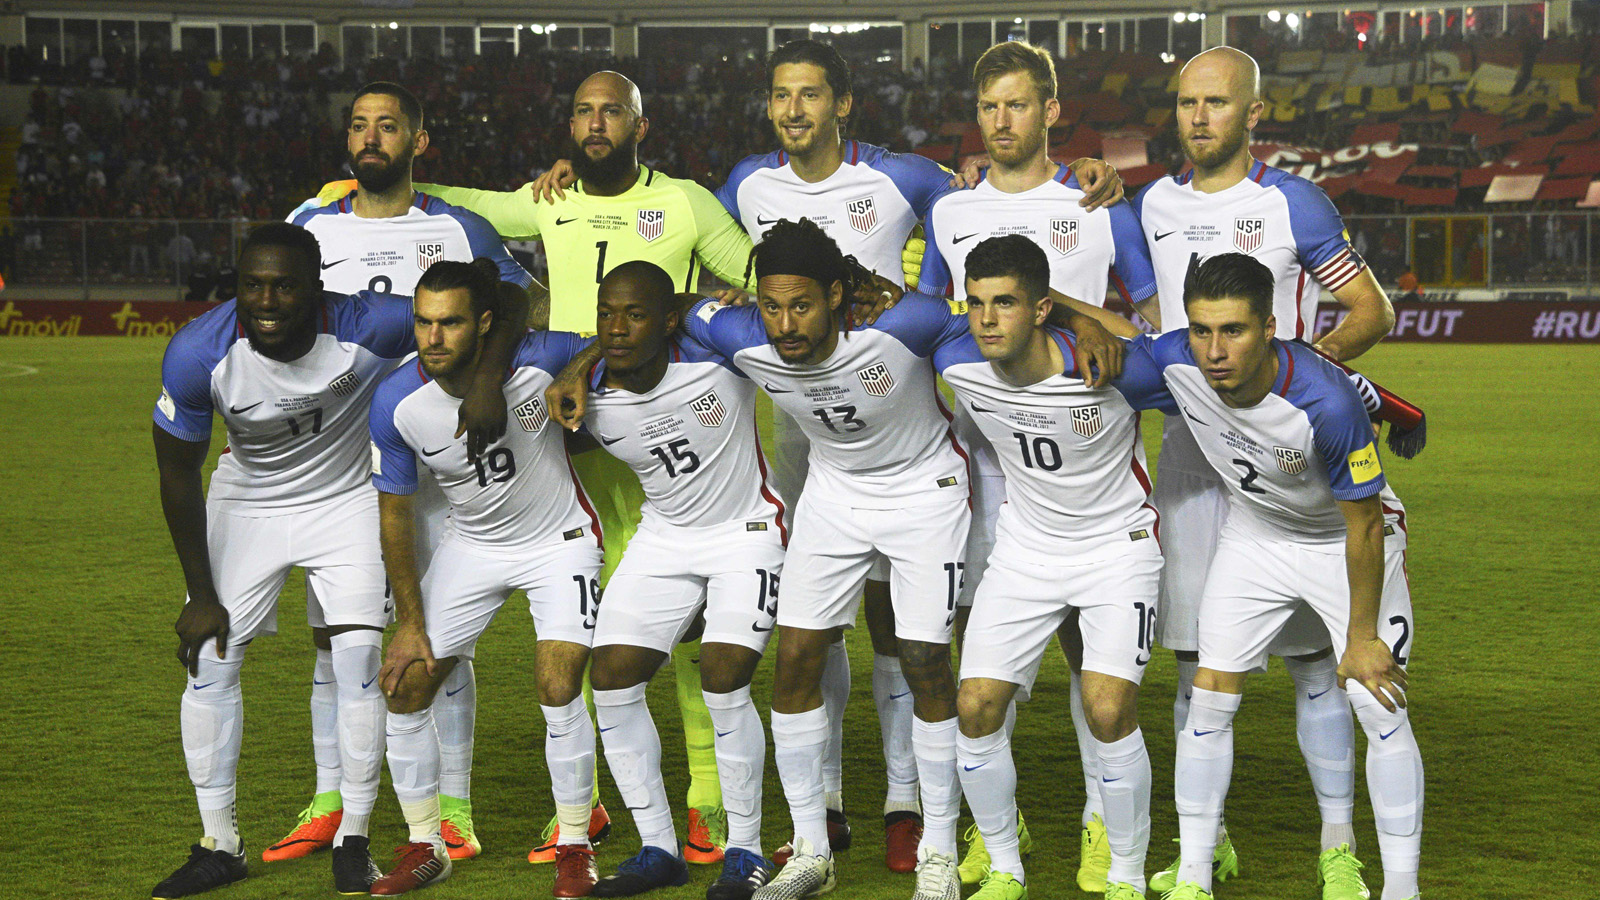 Players of United States pose for pictures before the start of their 2018 FIFA World Cup qualifier football match against Panama, in Panama City on March 28, 2017. / AFP PHOTO / RODRIGO ARANGUA        (Photo credit should read RODRIGO ARANGUA/AFP/Getty Images)